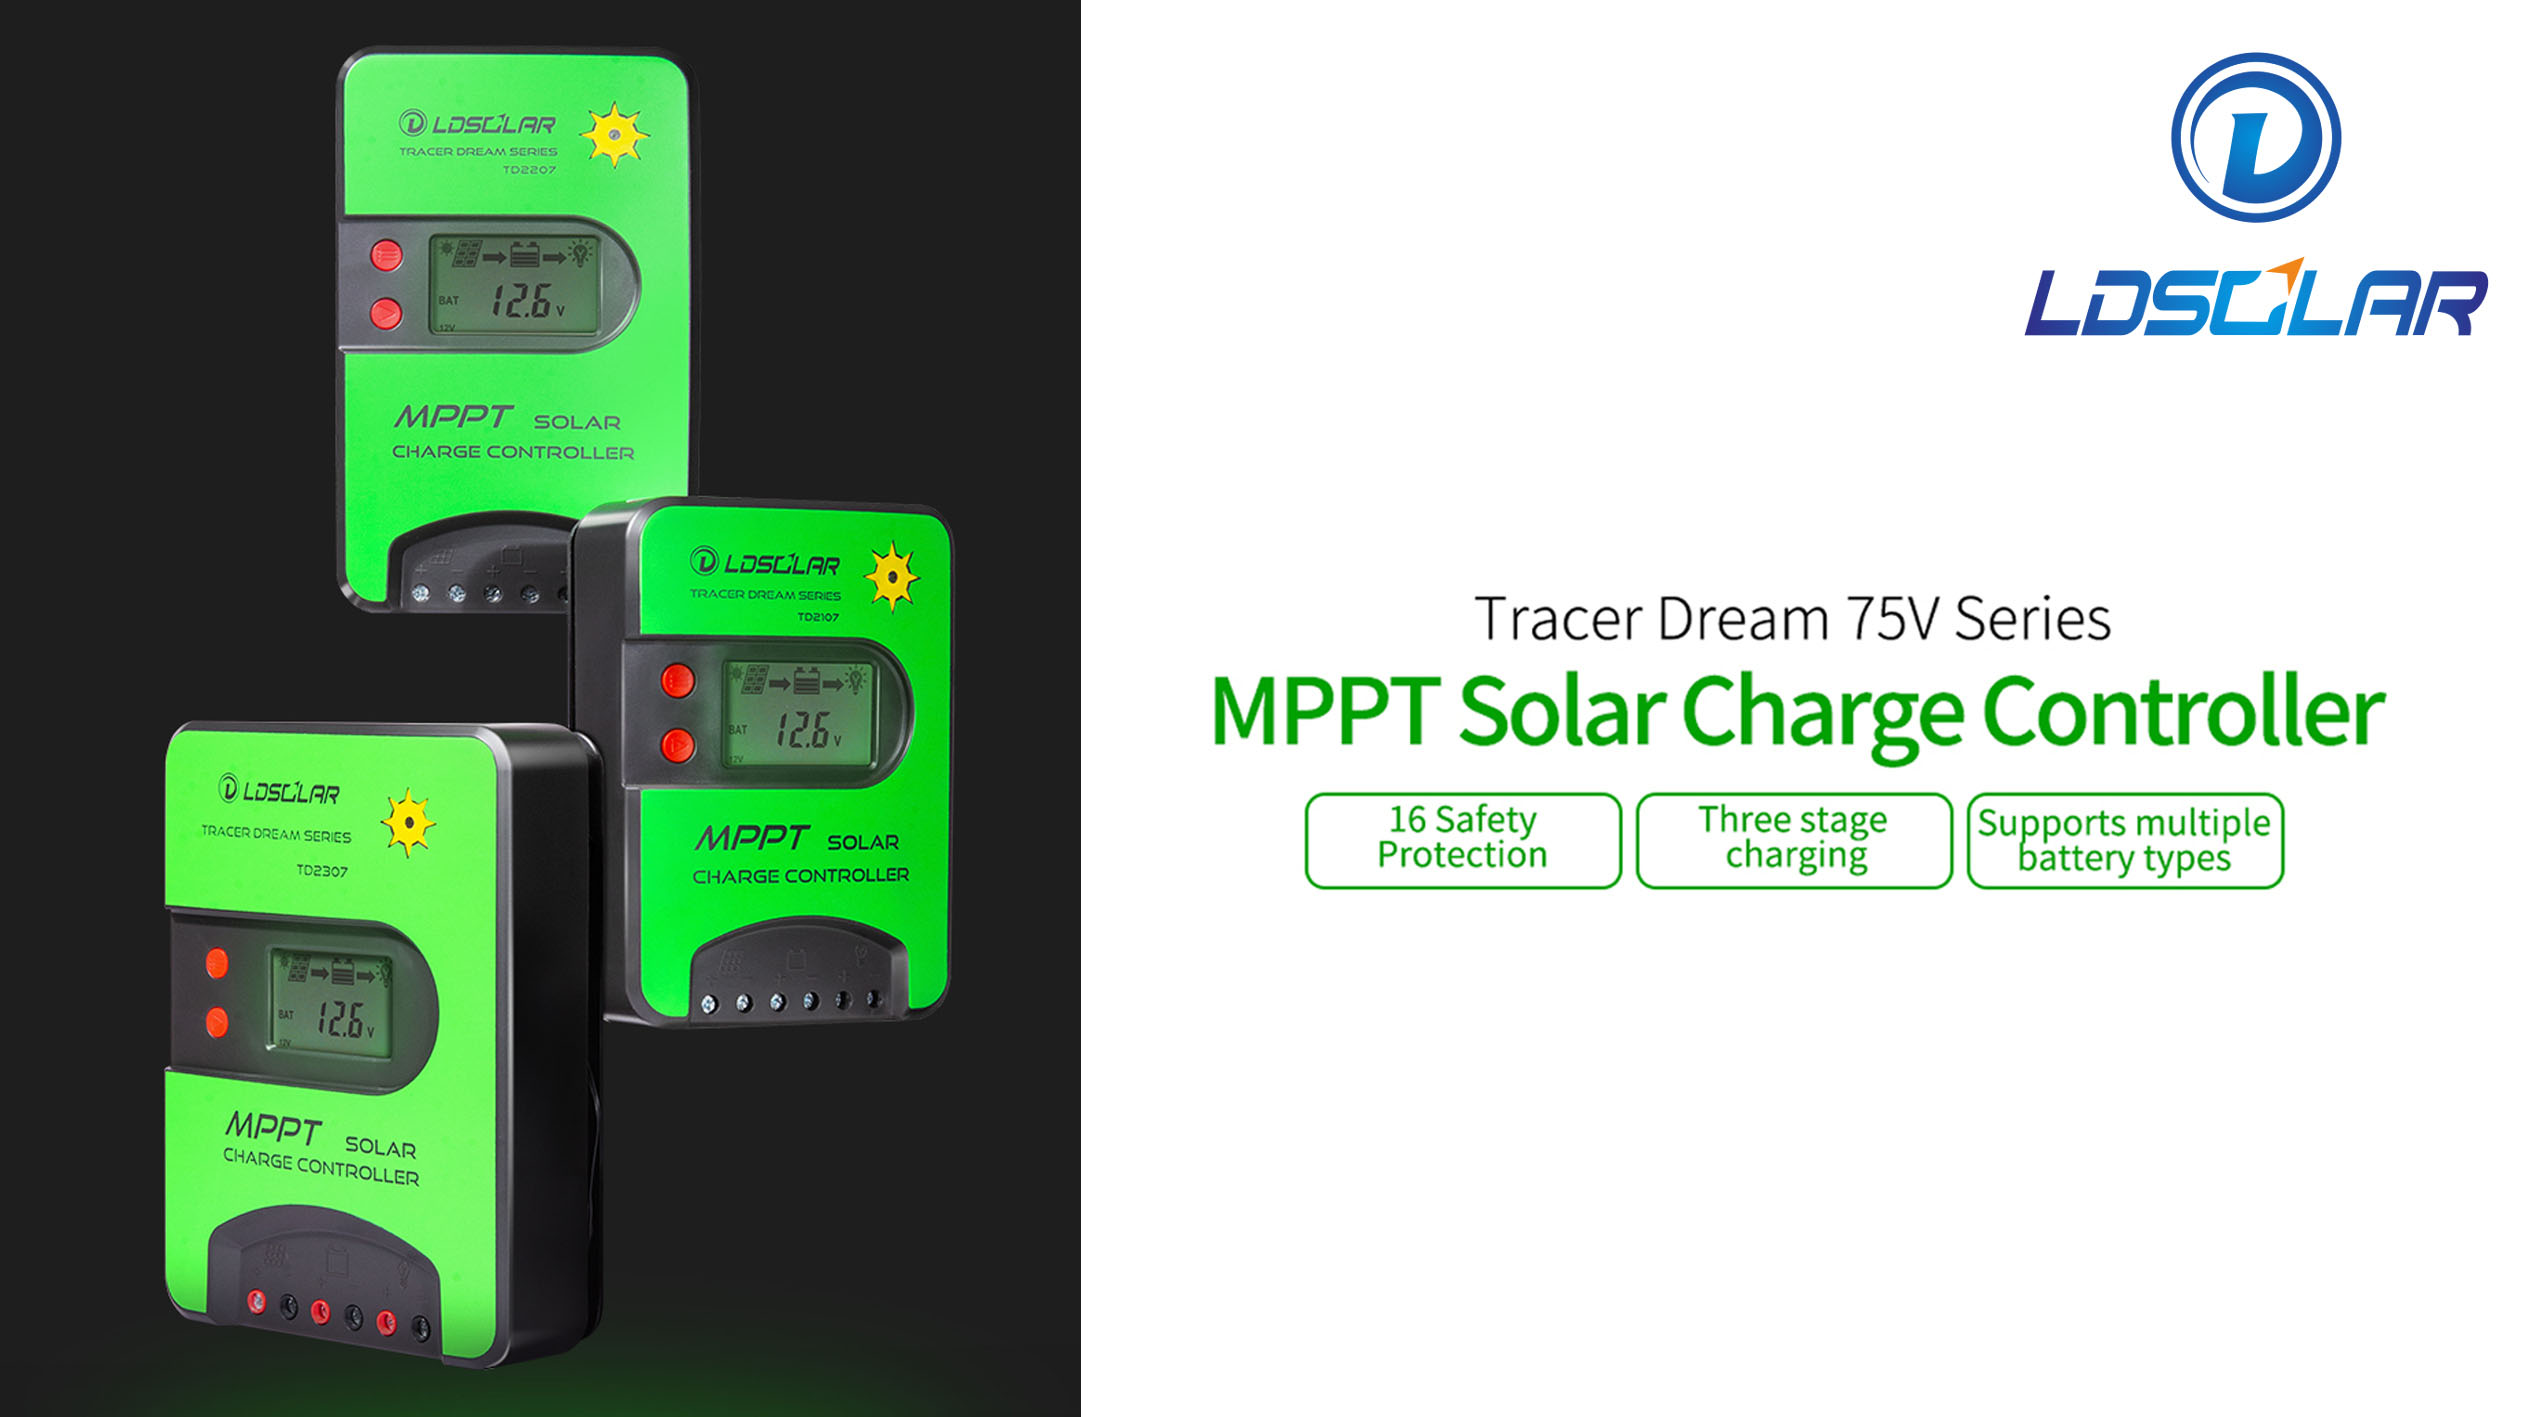 Tracer Dream 75V Series MPPT Solar Charge Controller